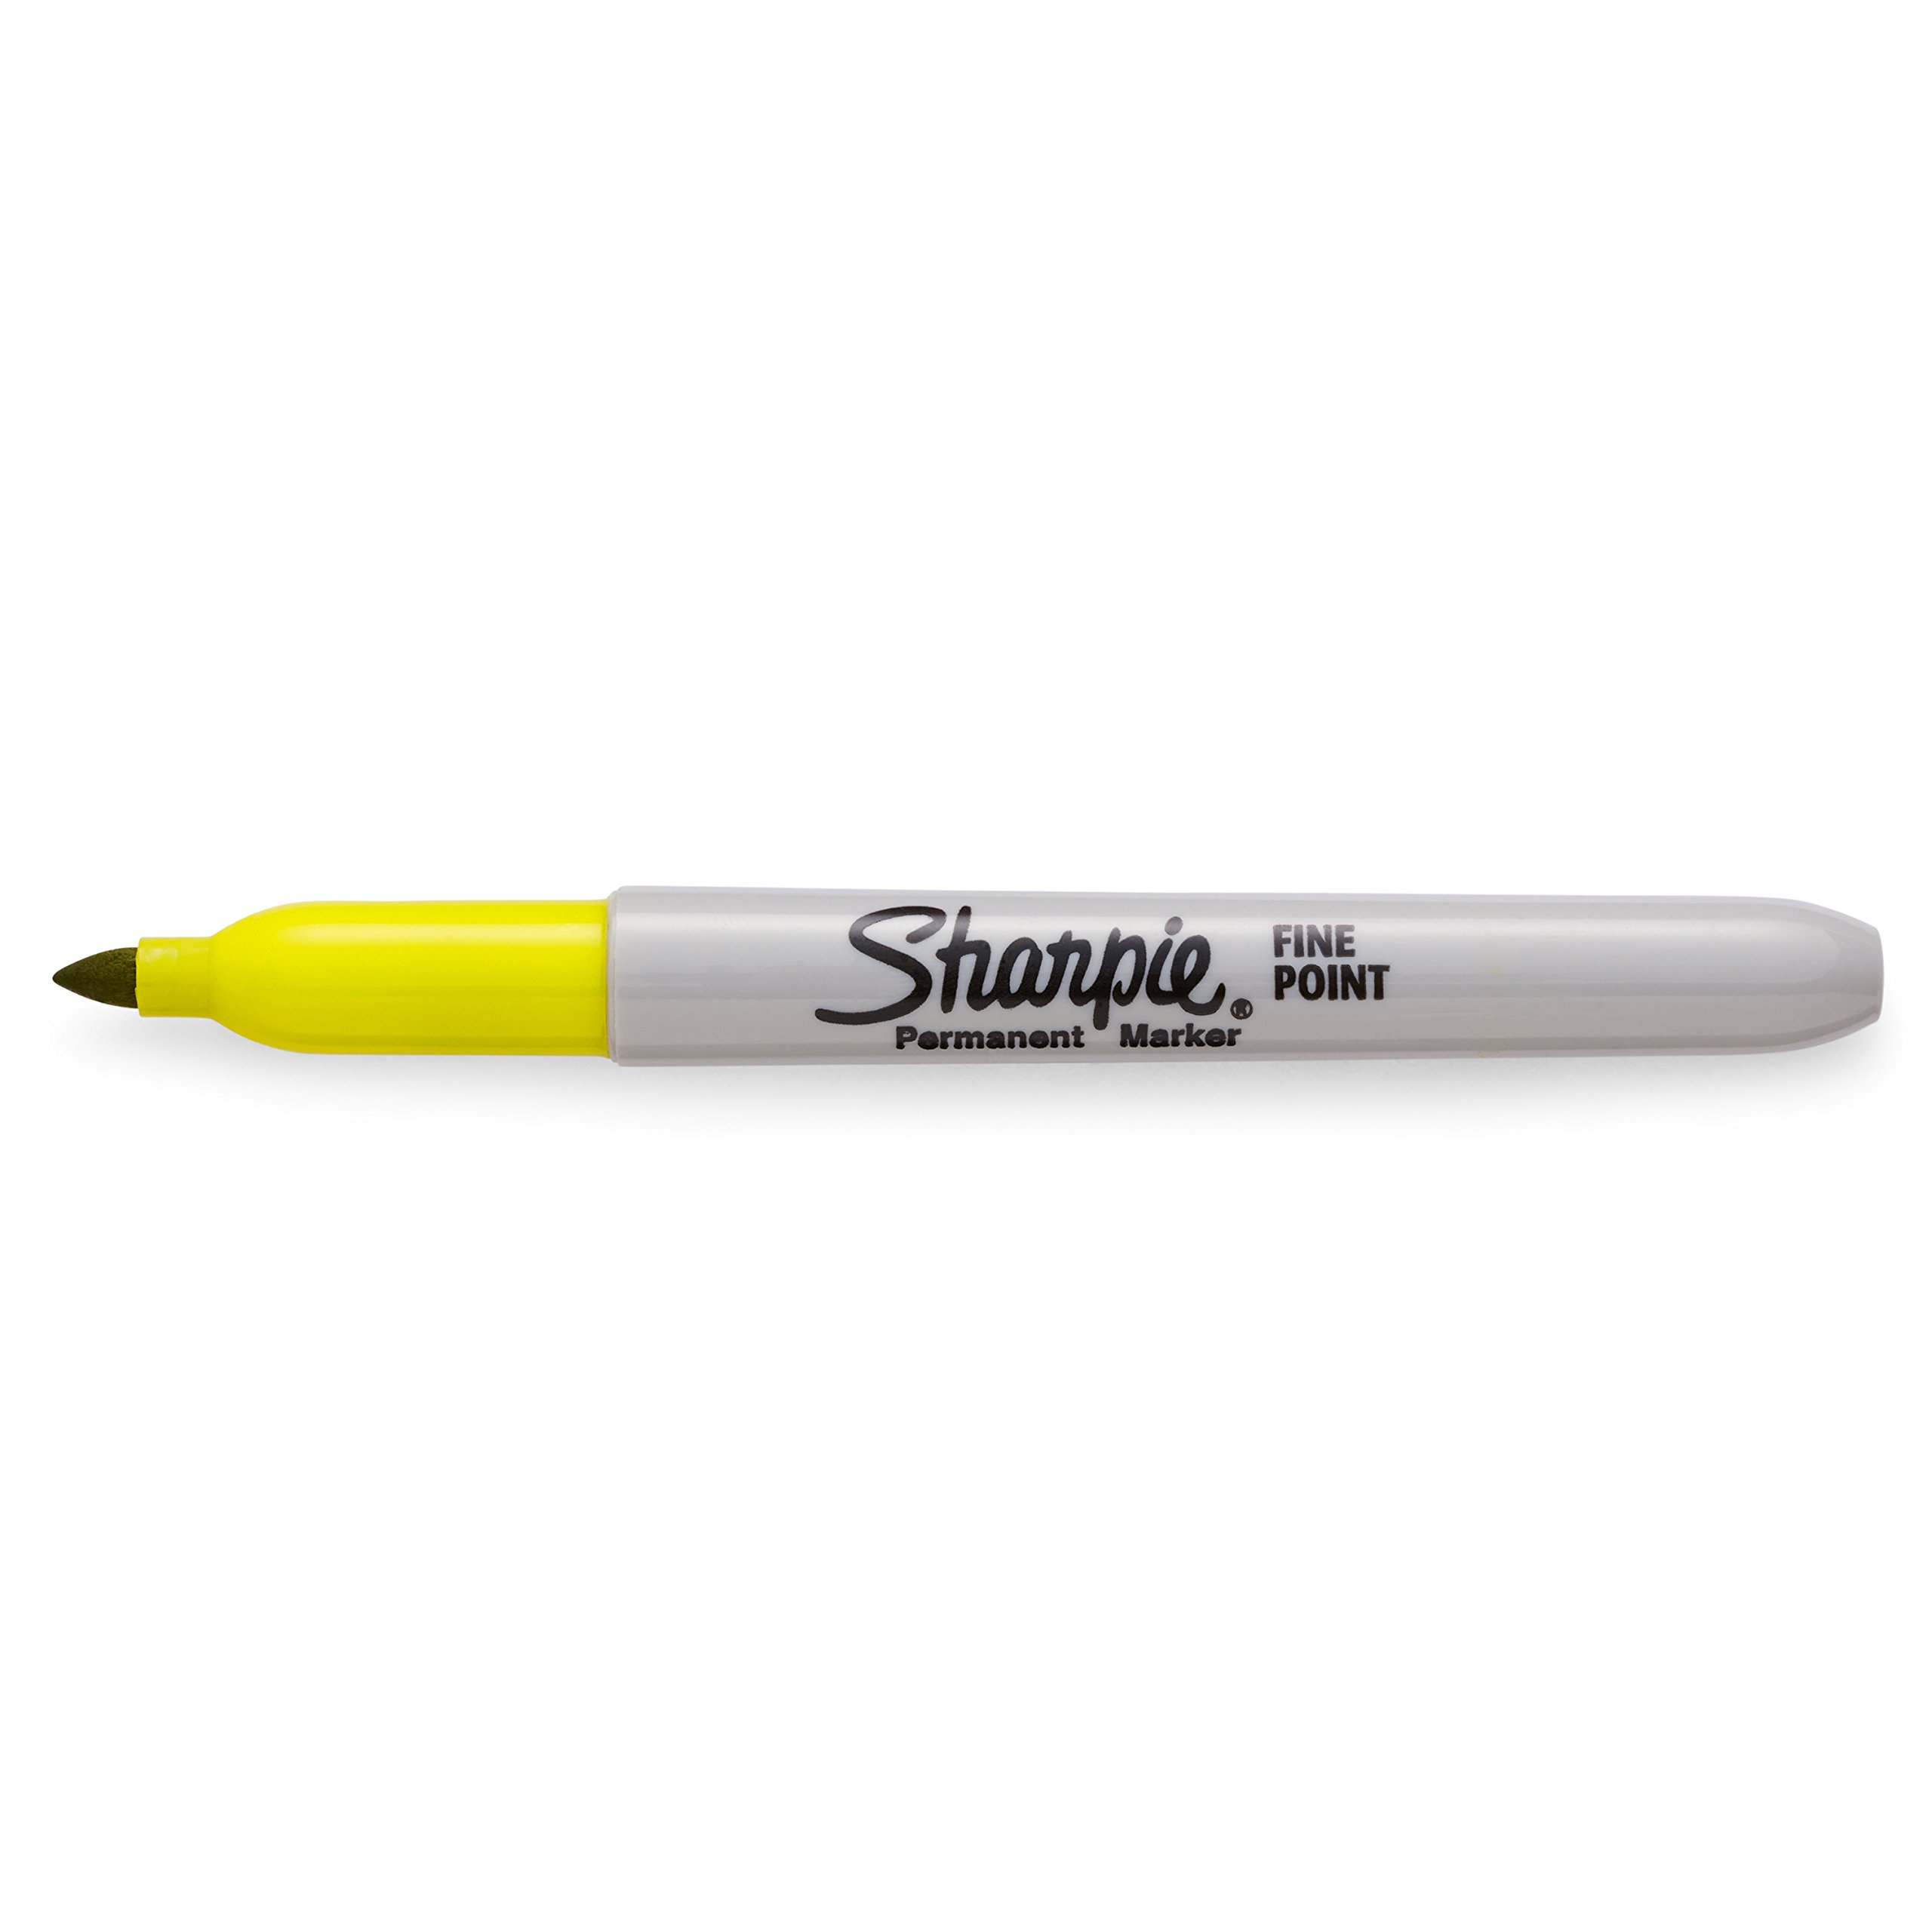 Sharpie Color Burst Permanent Markers, Fine Point, Assorted Colors, 24 Count by Sharpie (Image #17)